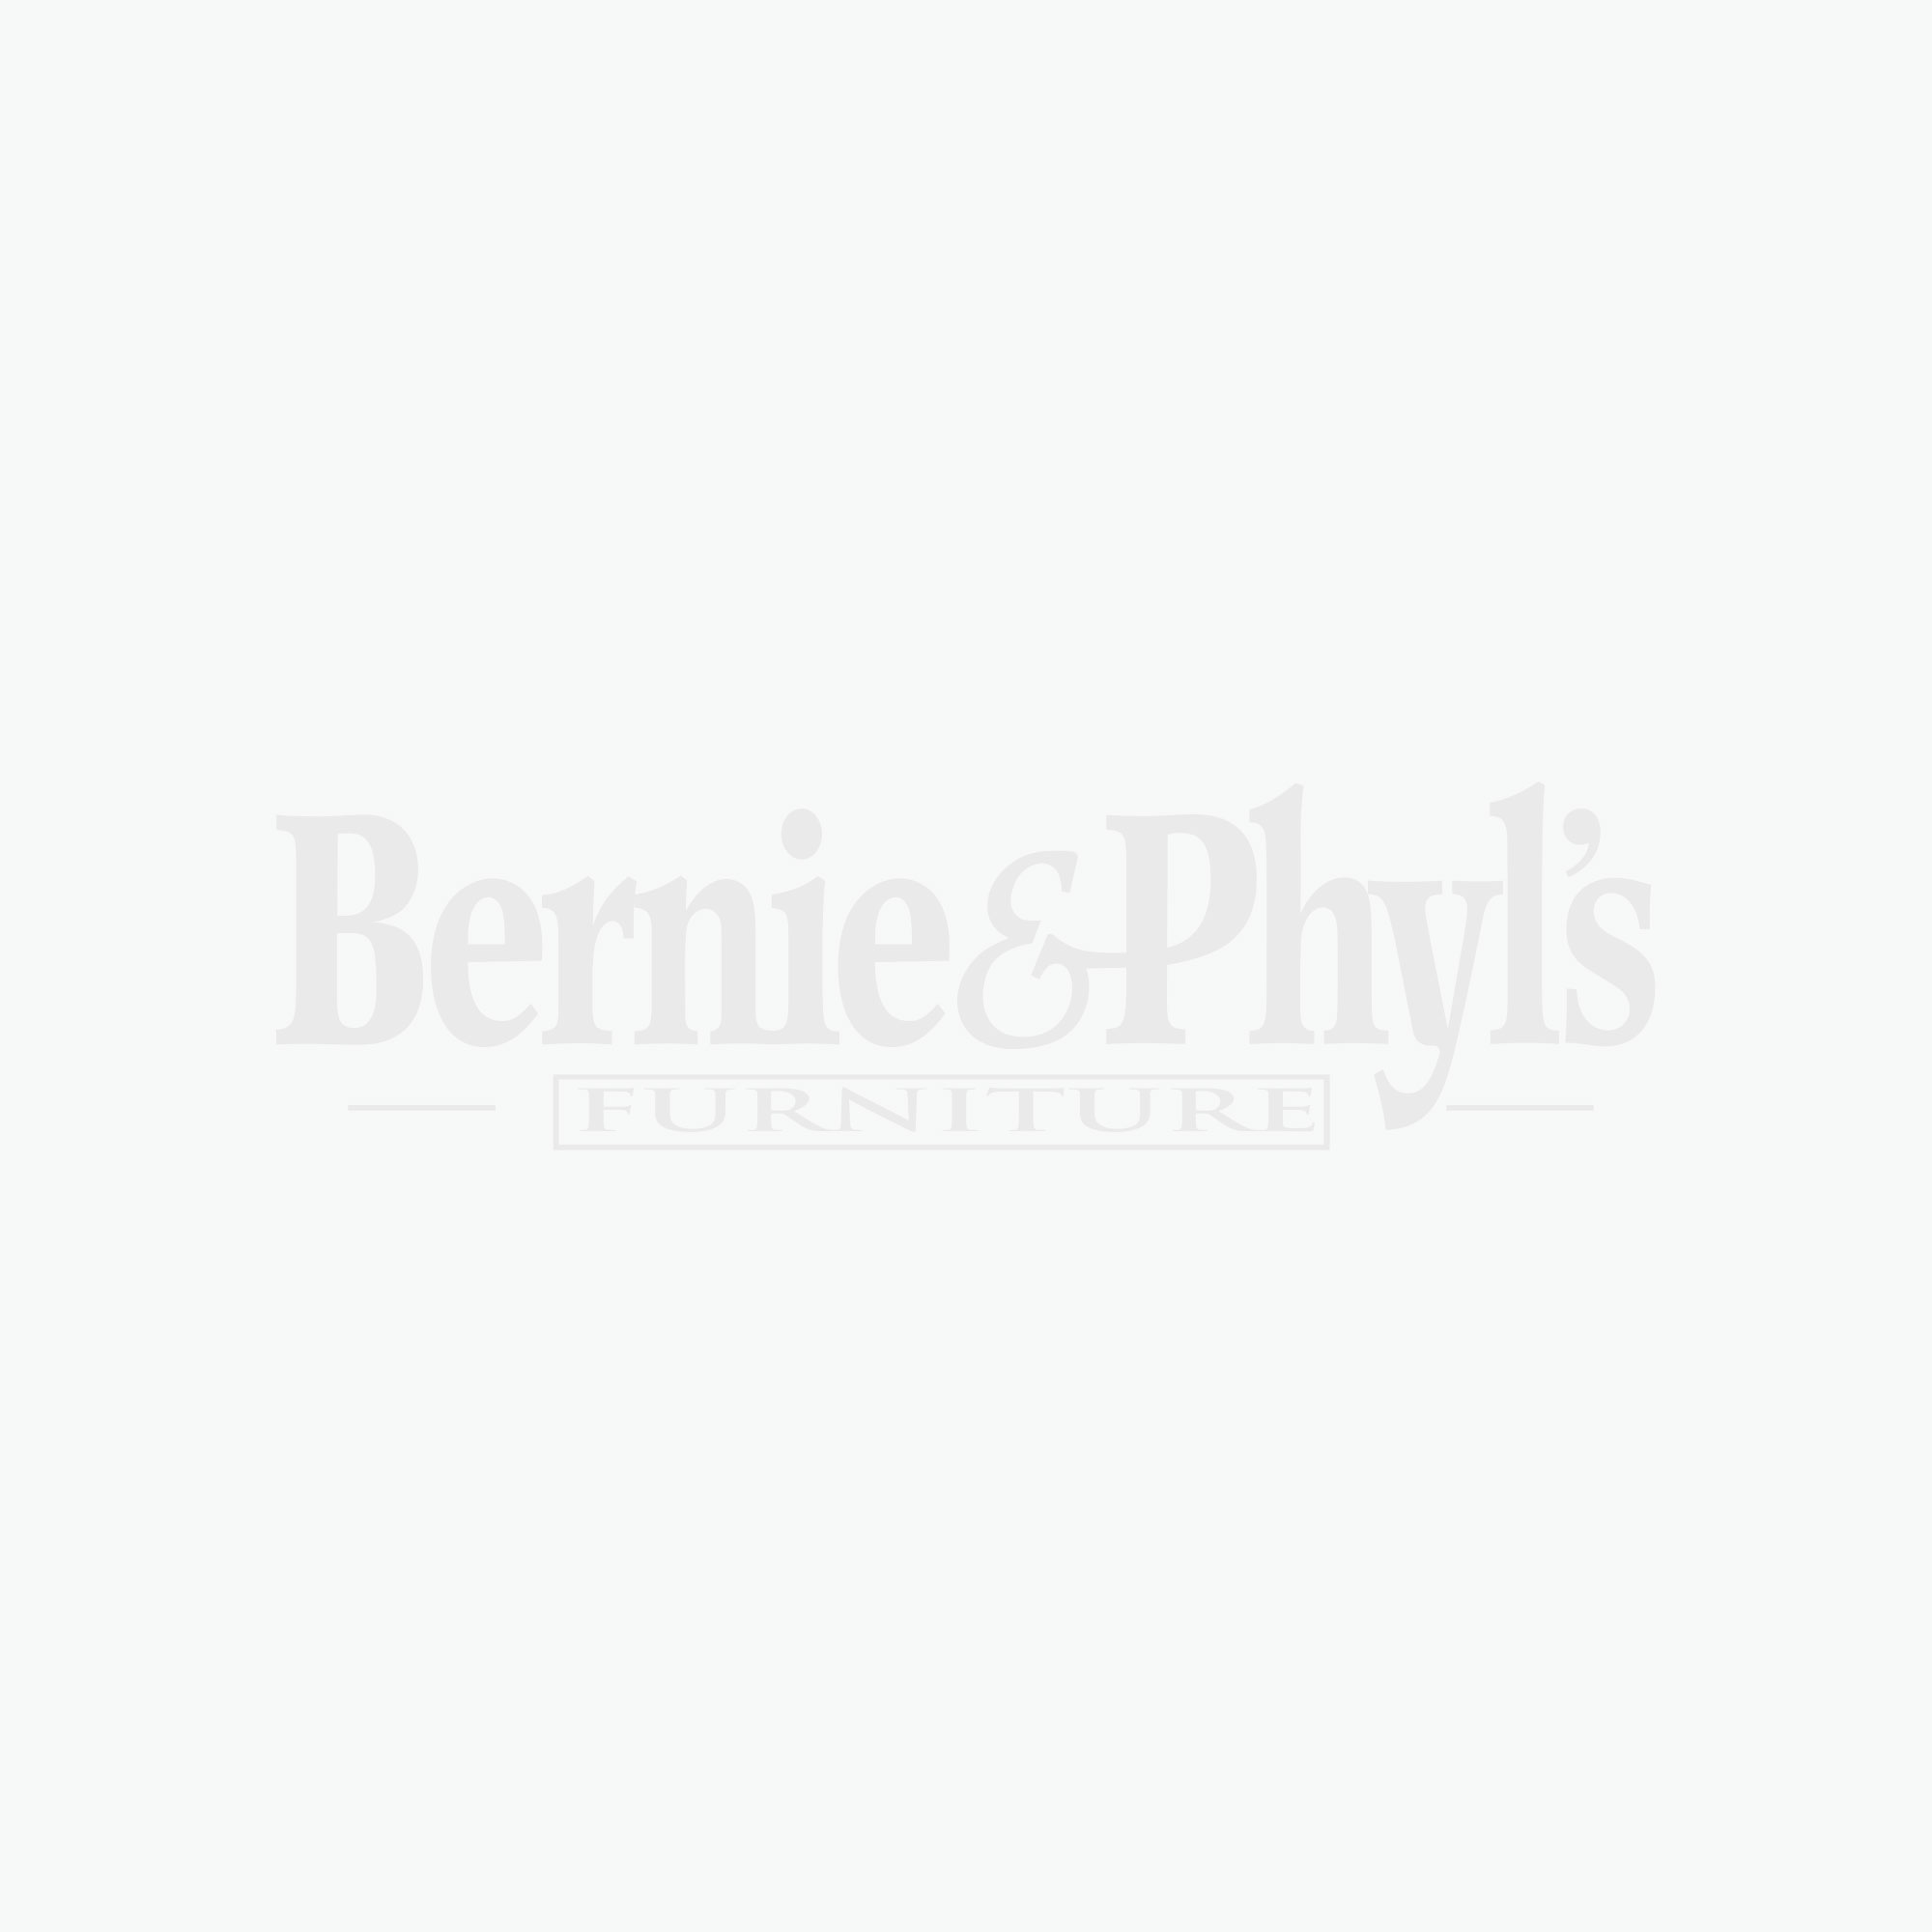 Image of: Westwood Village 3 Piece Island Set Island With 2 Backless Stools Bernie Phyl S Furniture By Sunny Designs Furniture